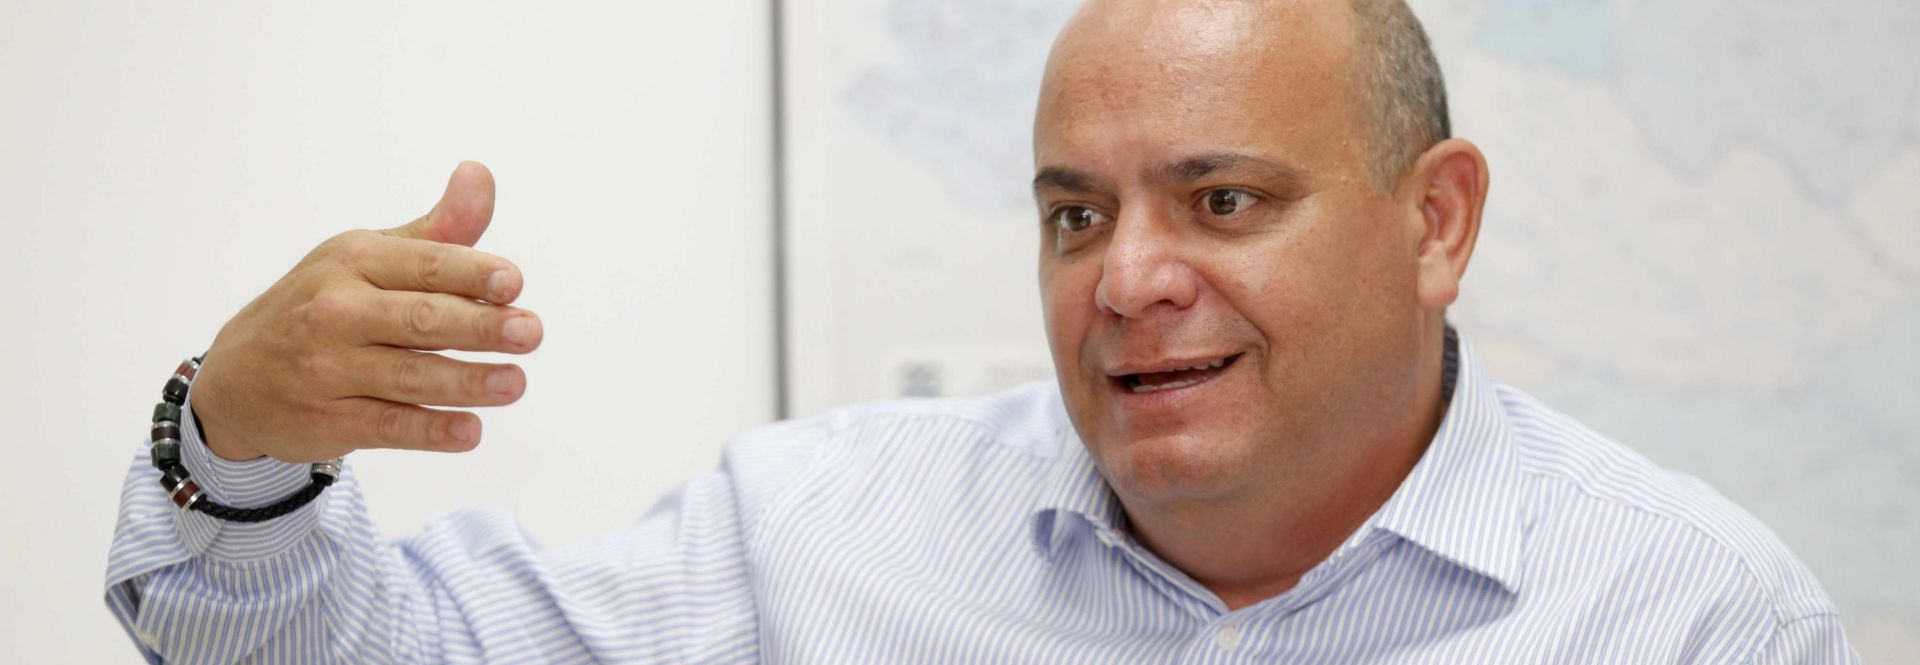 """Photo of the regional representative for Central America, Cuba and Mexico of the UN Refugee Agency (UNHCR), the Ecuadorian Jose Samaniego, telling EFE in an interview on June 19, 2019, that """"year after year"""" the number of refugees, applicants for asylum and displaced persons in the region """"continues to rise because of conflicts, violence and human rights violations."""" EFE/Alejandro Bolivar"""